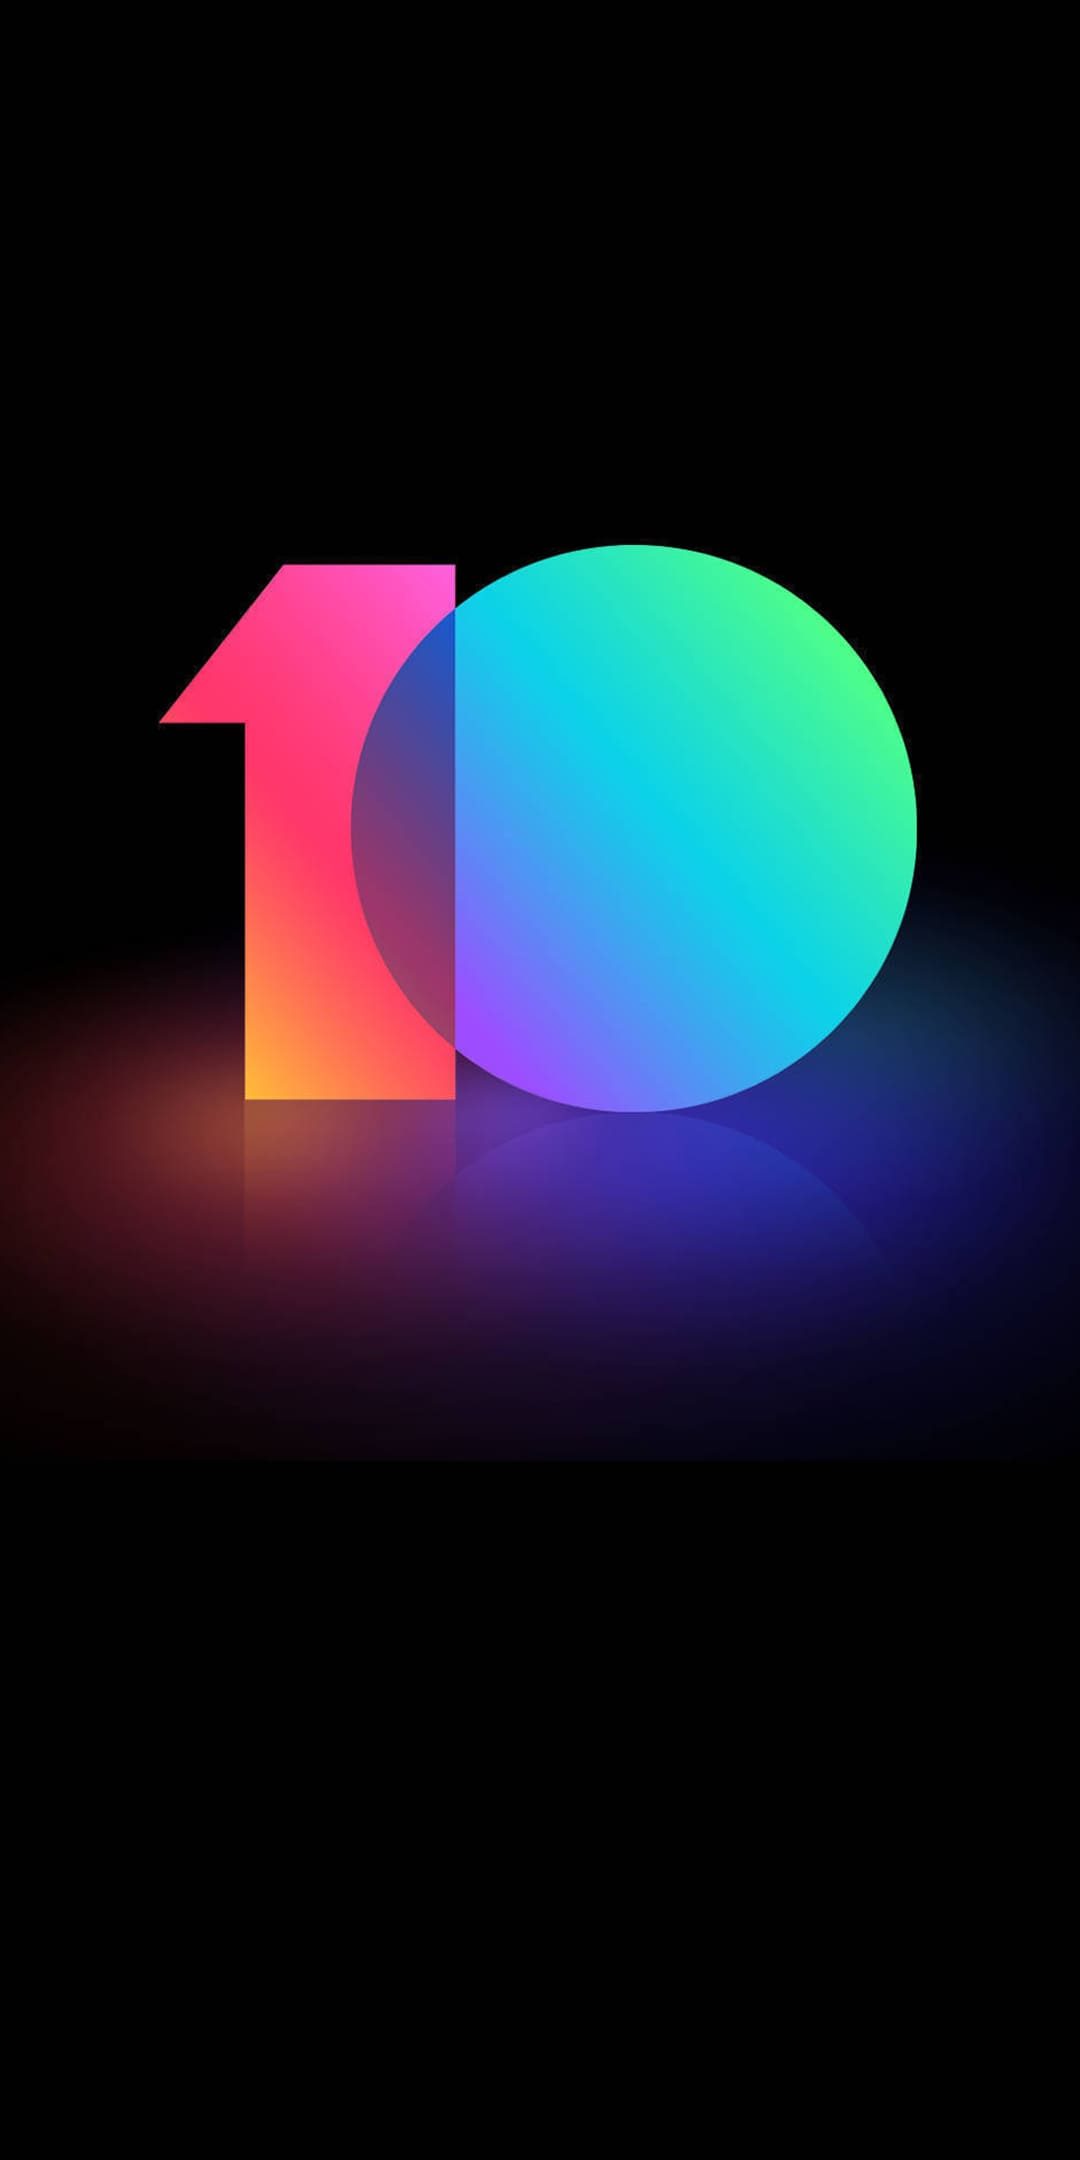 MIUI 9 Stock Wallpapers: Download MIUI 10 Stock Wallpapers (Updated)